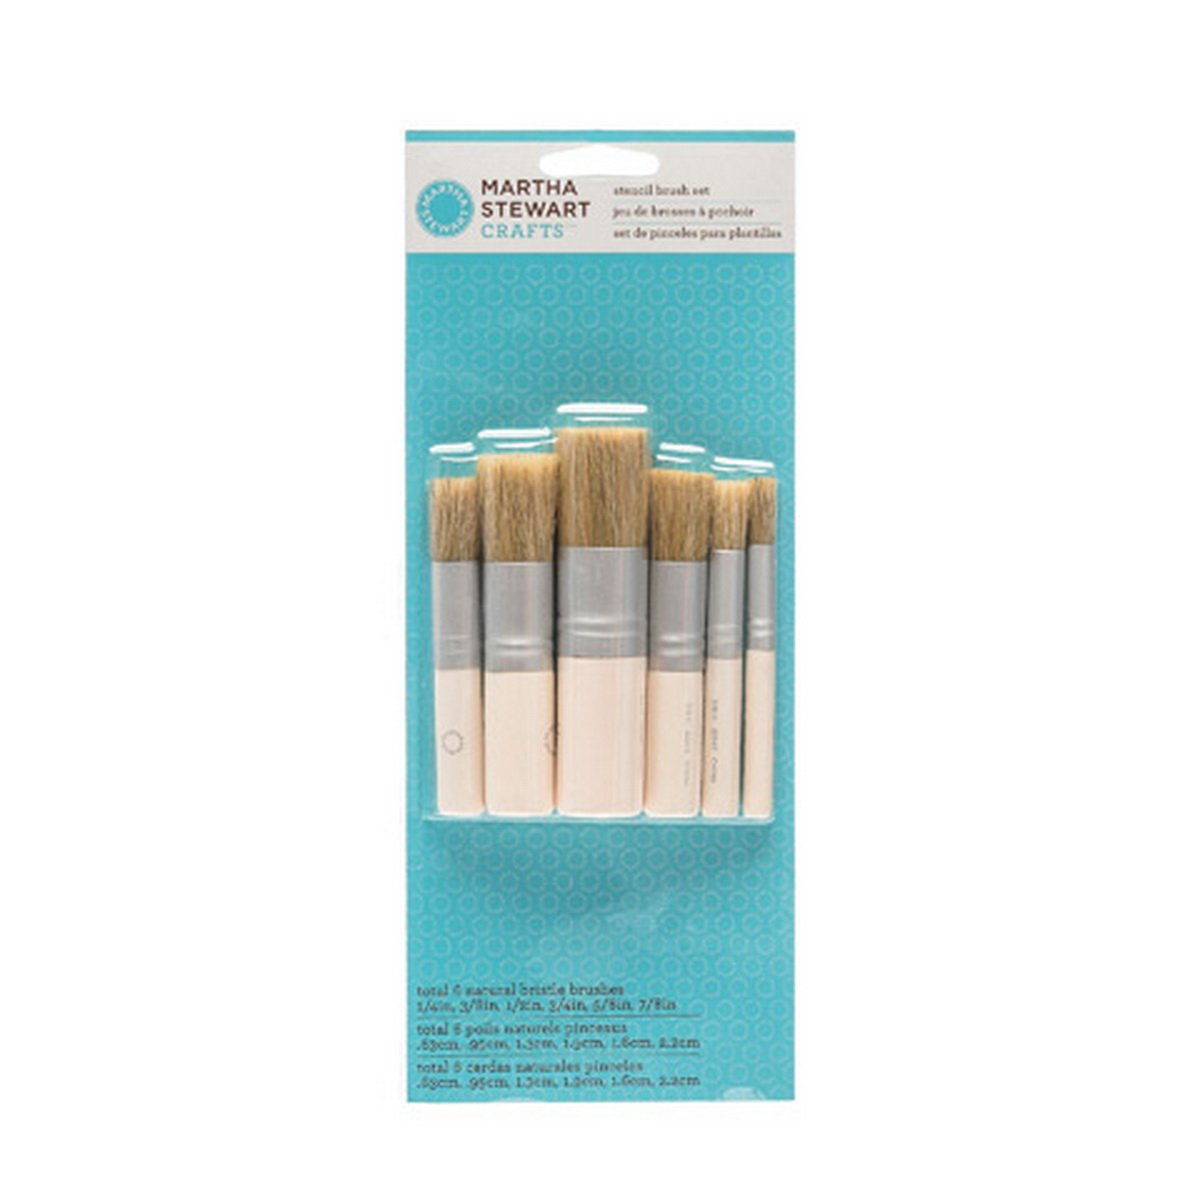 Martha Stewart Crafts Stencil Brush Set: 6 Pieces - 10033377 by Martha Stewart Crafts